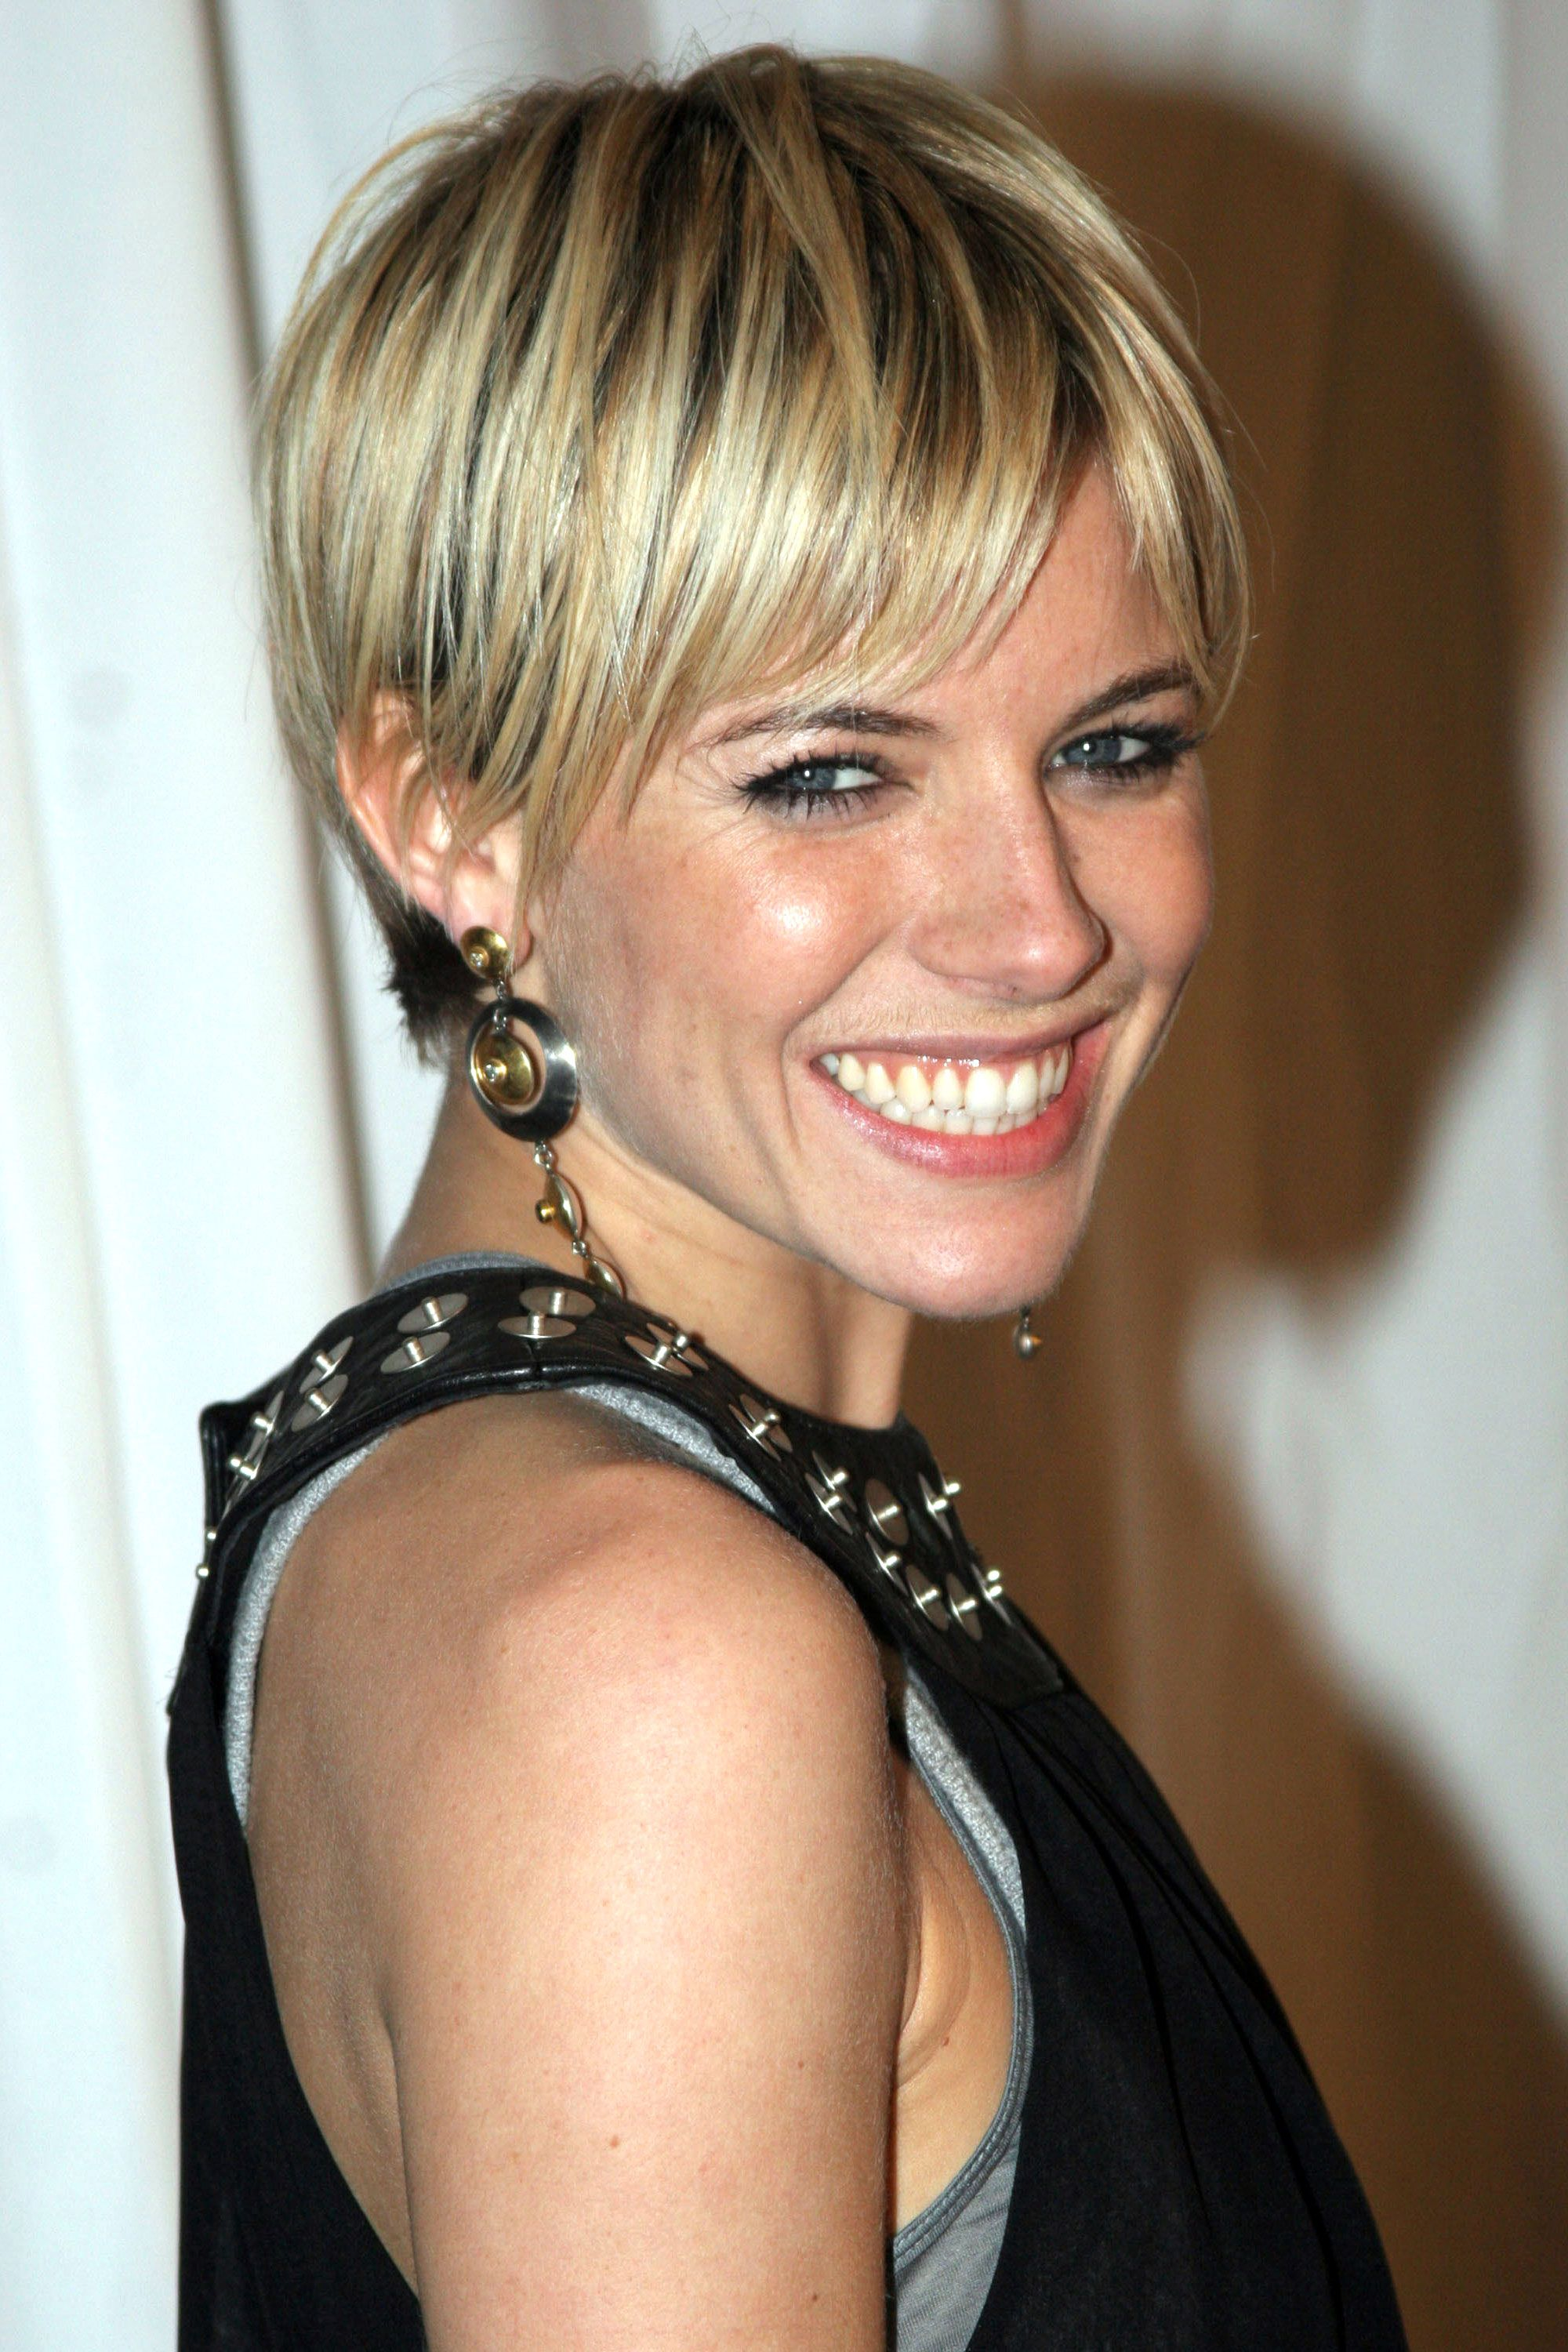 Pixie Cuts We Love For Short Pixie Hairstyles From - Short hairstyle bob cut